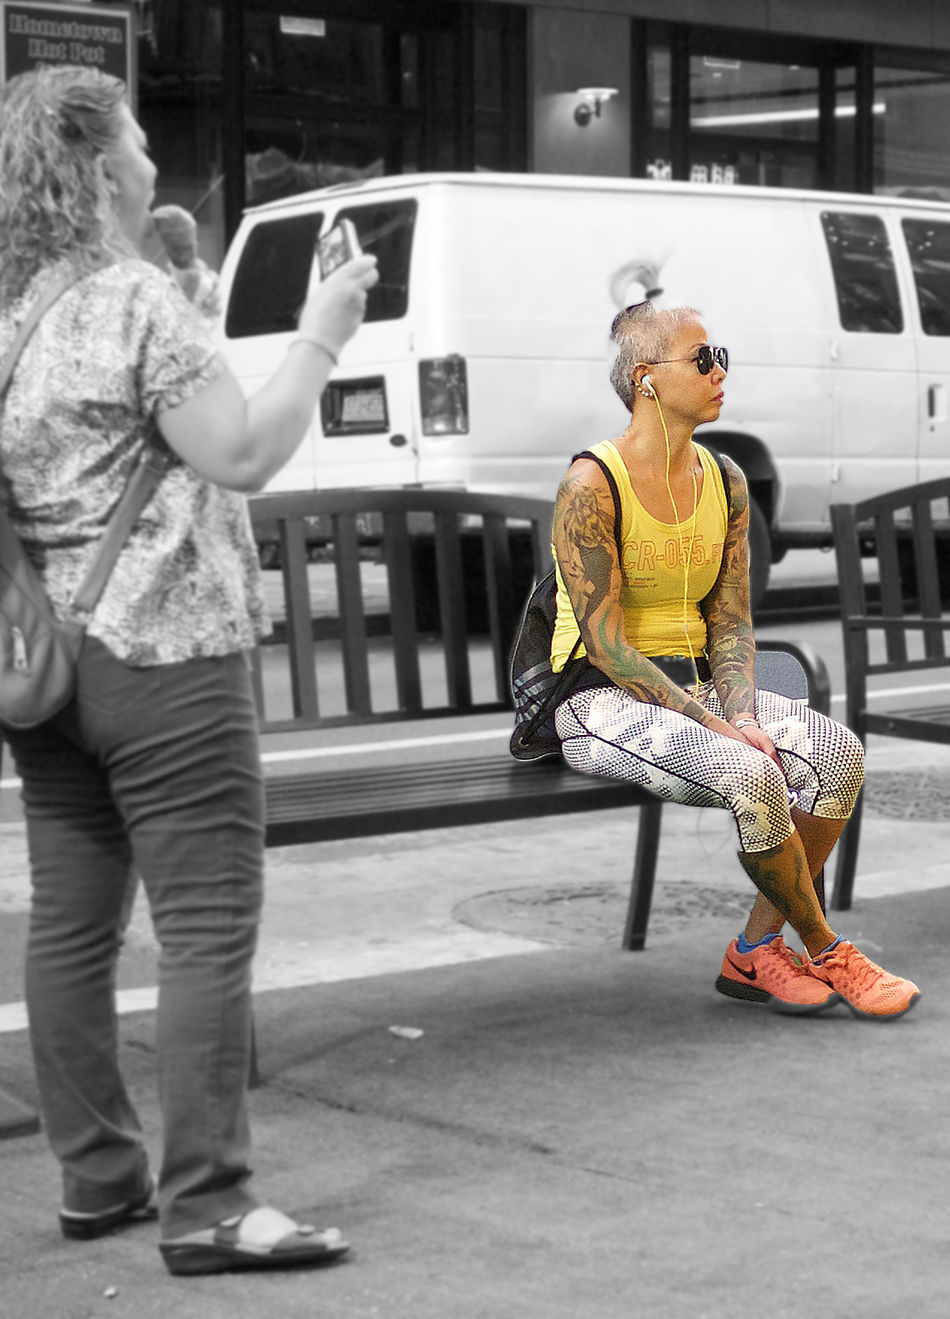 Chinatown Lifestyles NYC People Photographer Real People Spotcolor Street Photography Tatoo Young Women